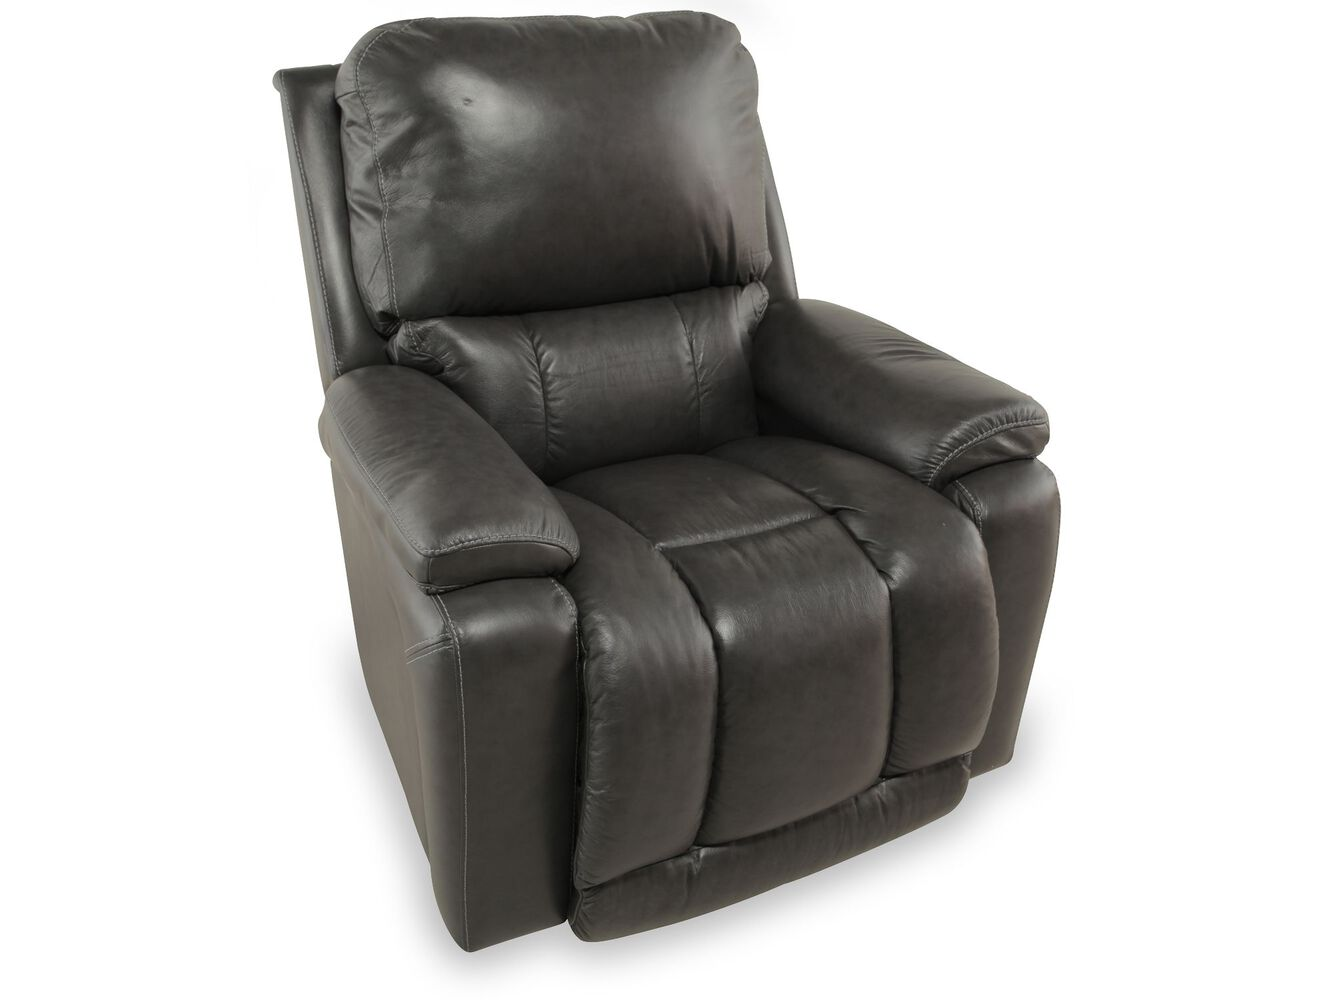 black leather recliner armchair traditional leather 37 5 quot power recliner in gray mathis 11223 | LZB P10^047530 LG104558 1